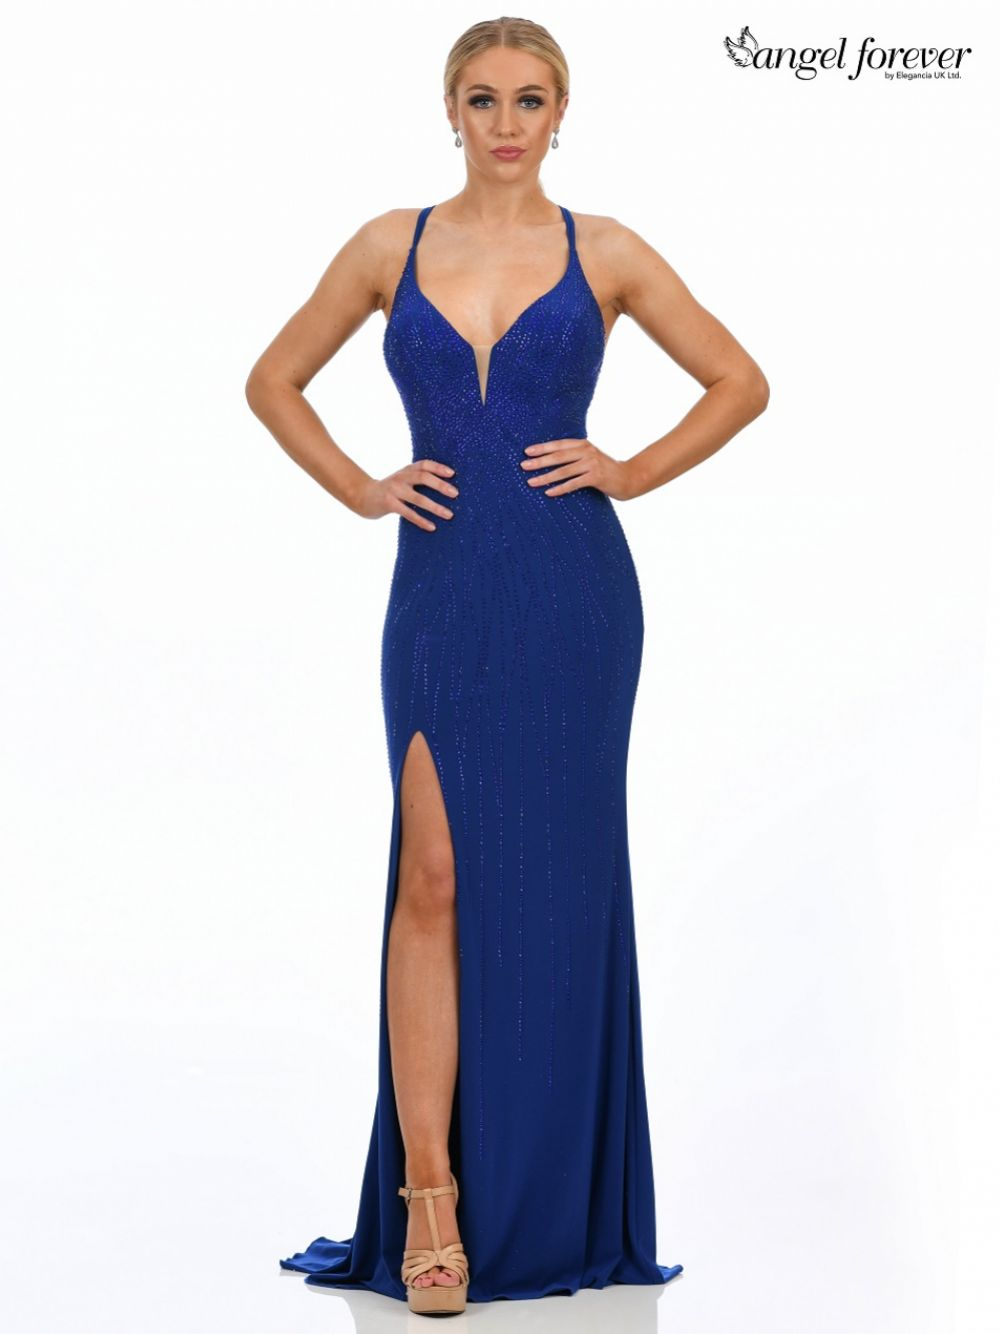 Angel Forever Diamante Embellished Fitted Prom Dress with Slit (Royal Blue)